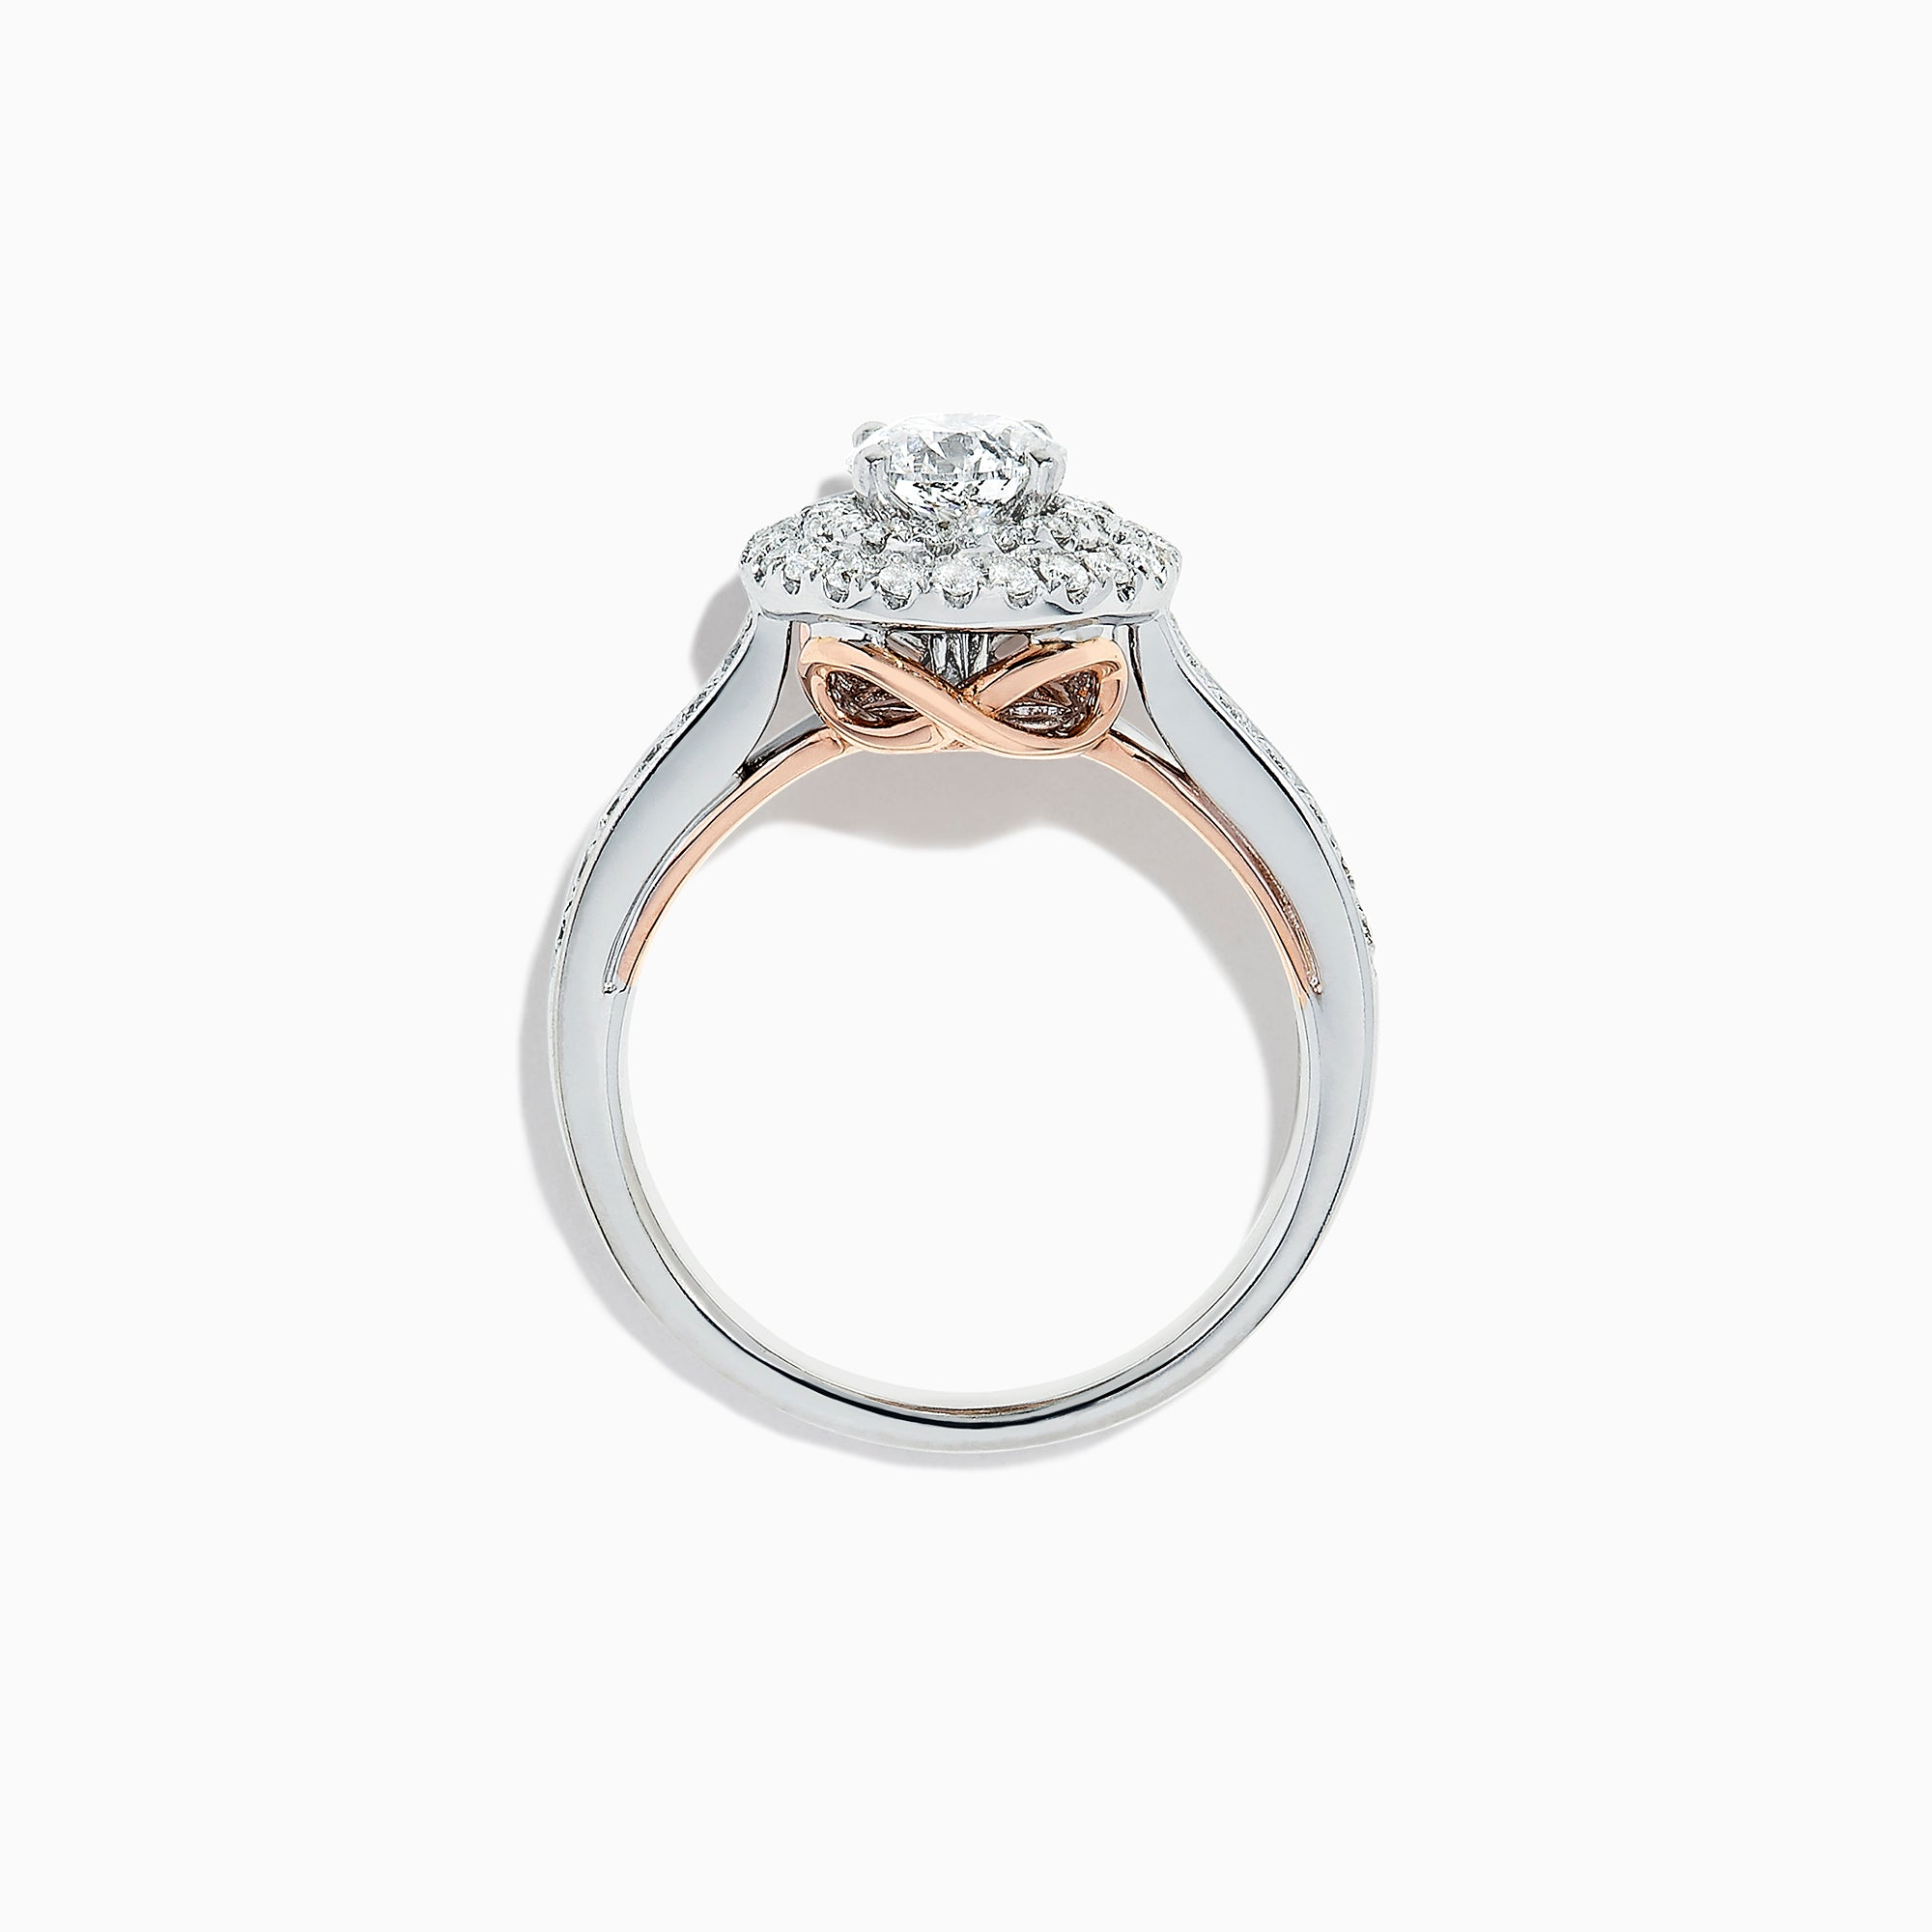 Effy Bridal 18K Two Tone Gold Diamond Ring, 1.24 TCW